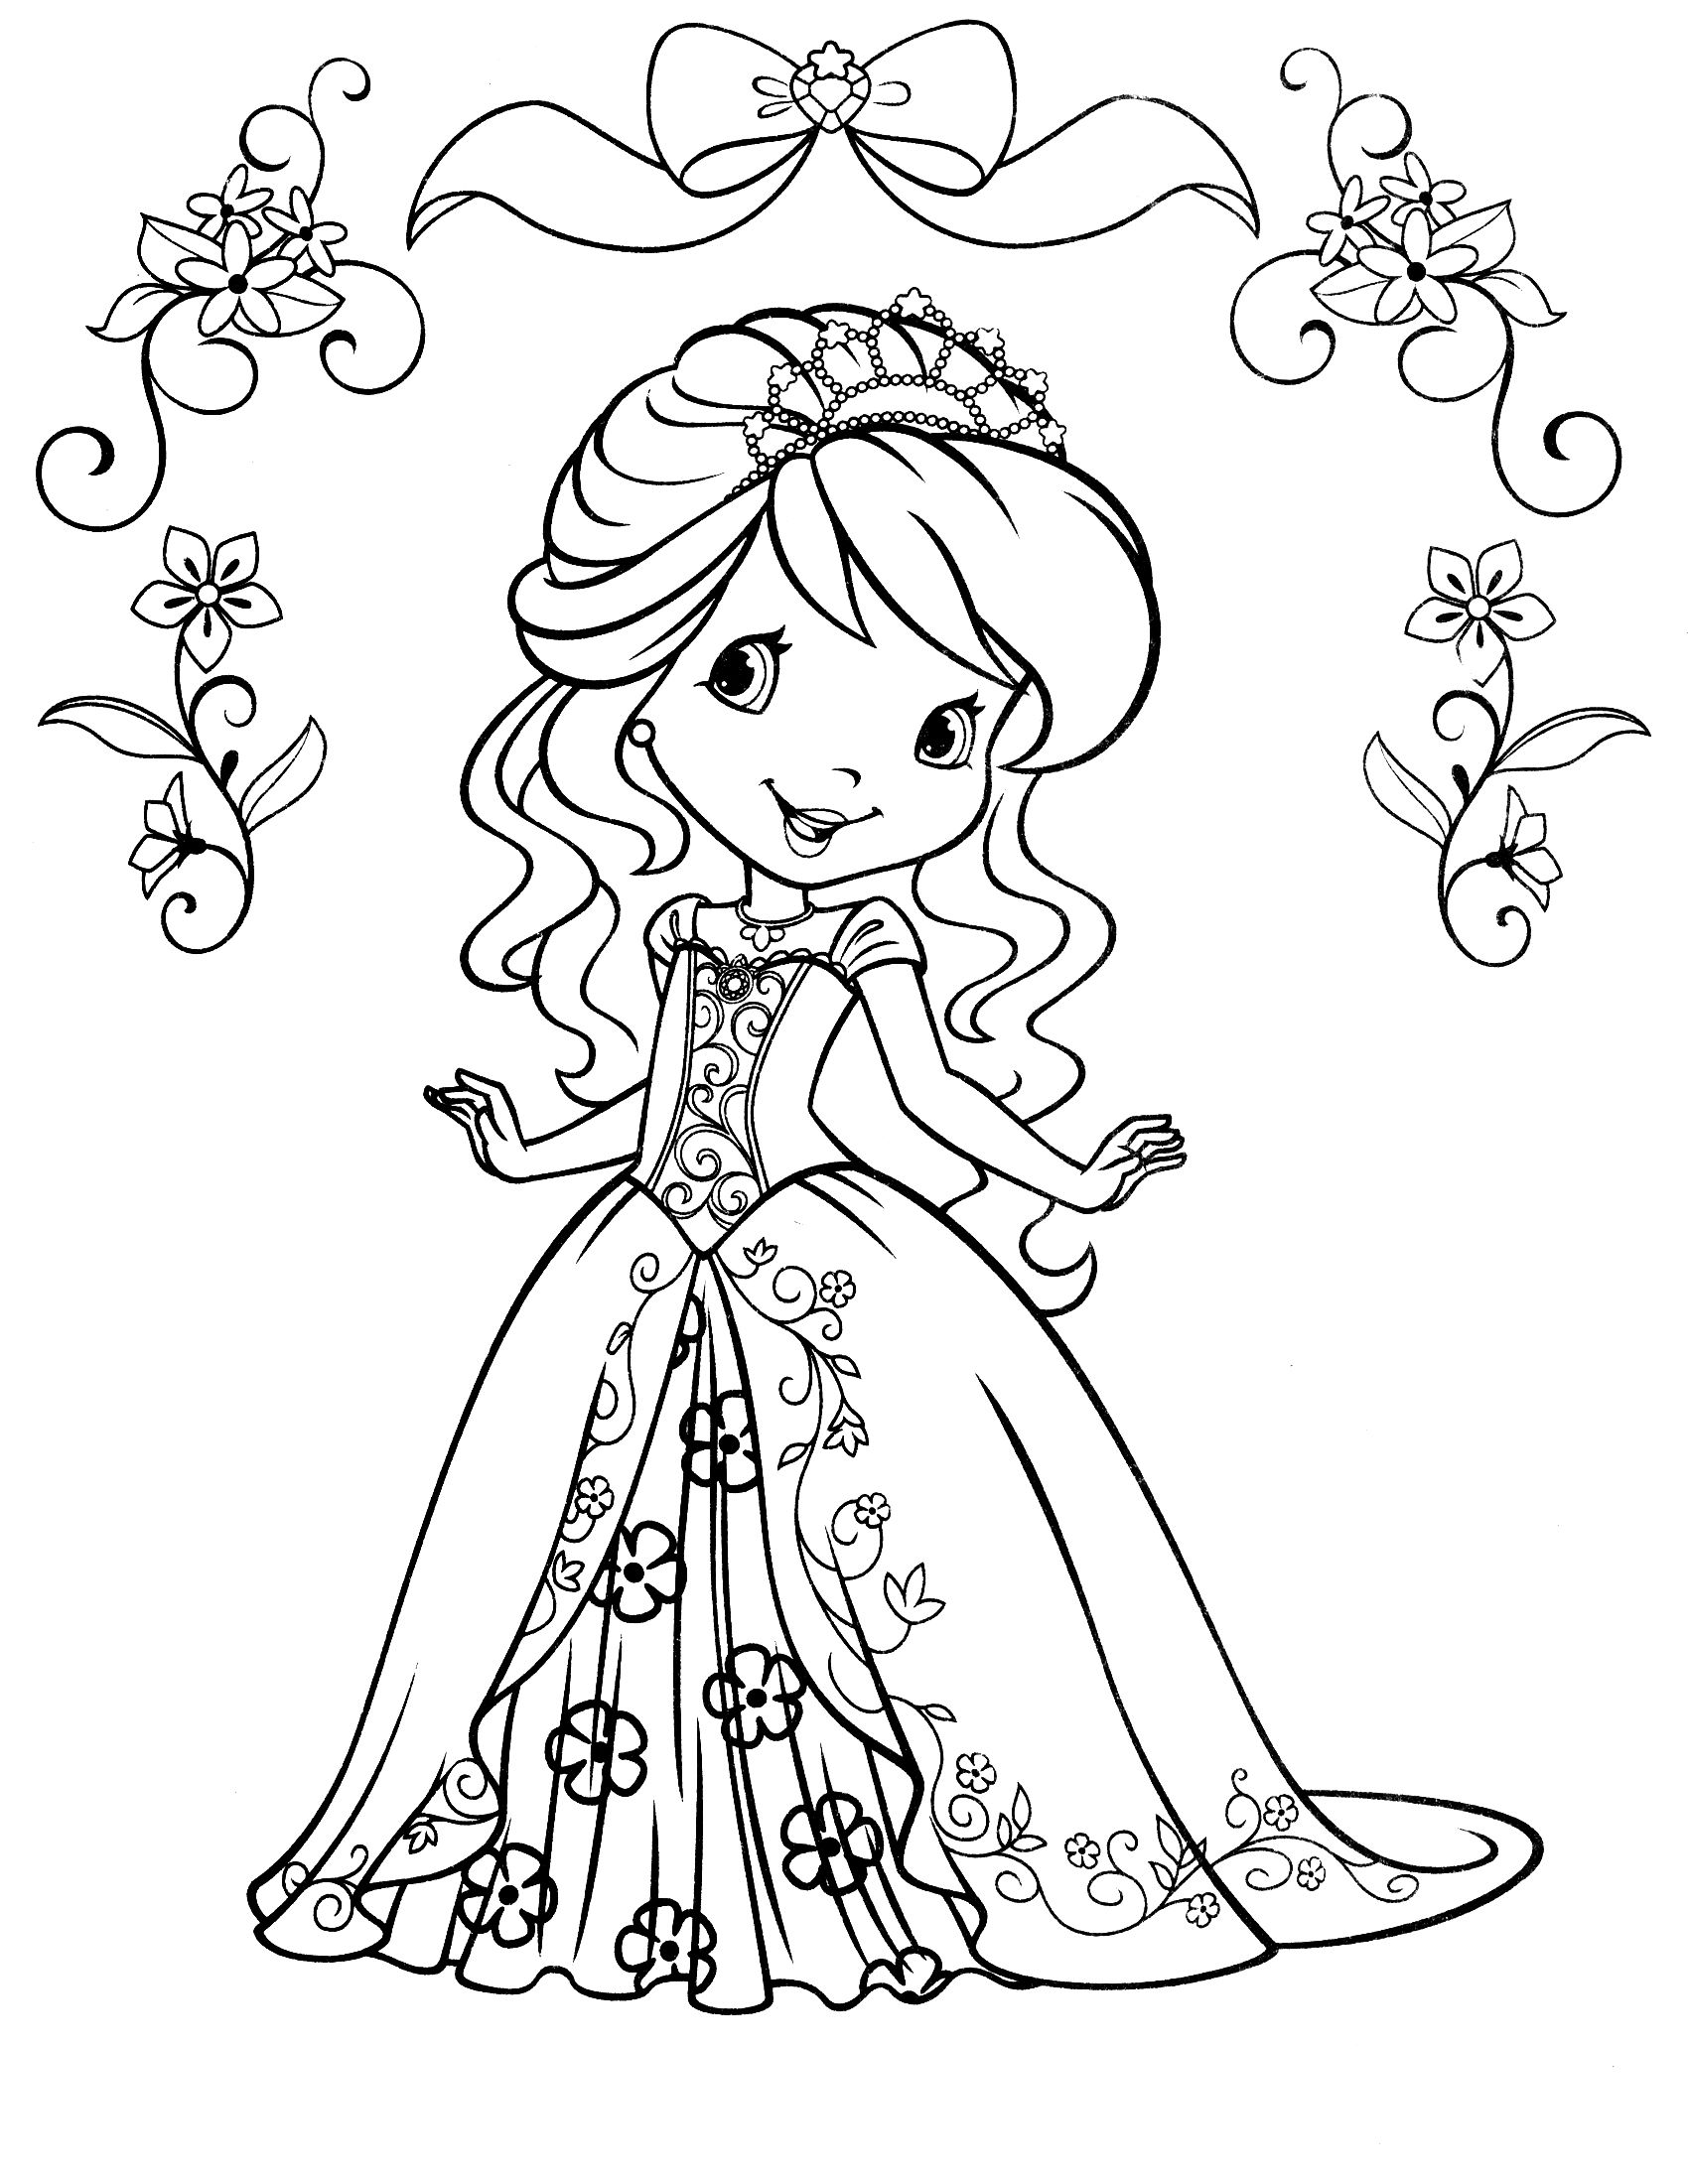 Disney princess colouring pages pdf